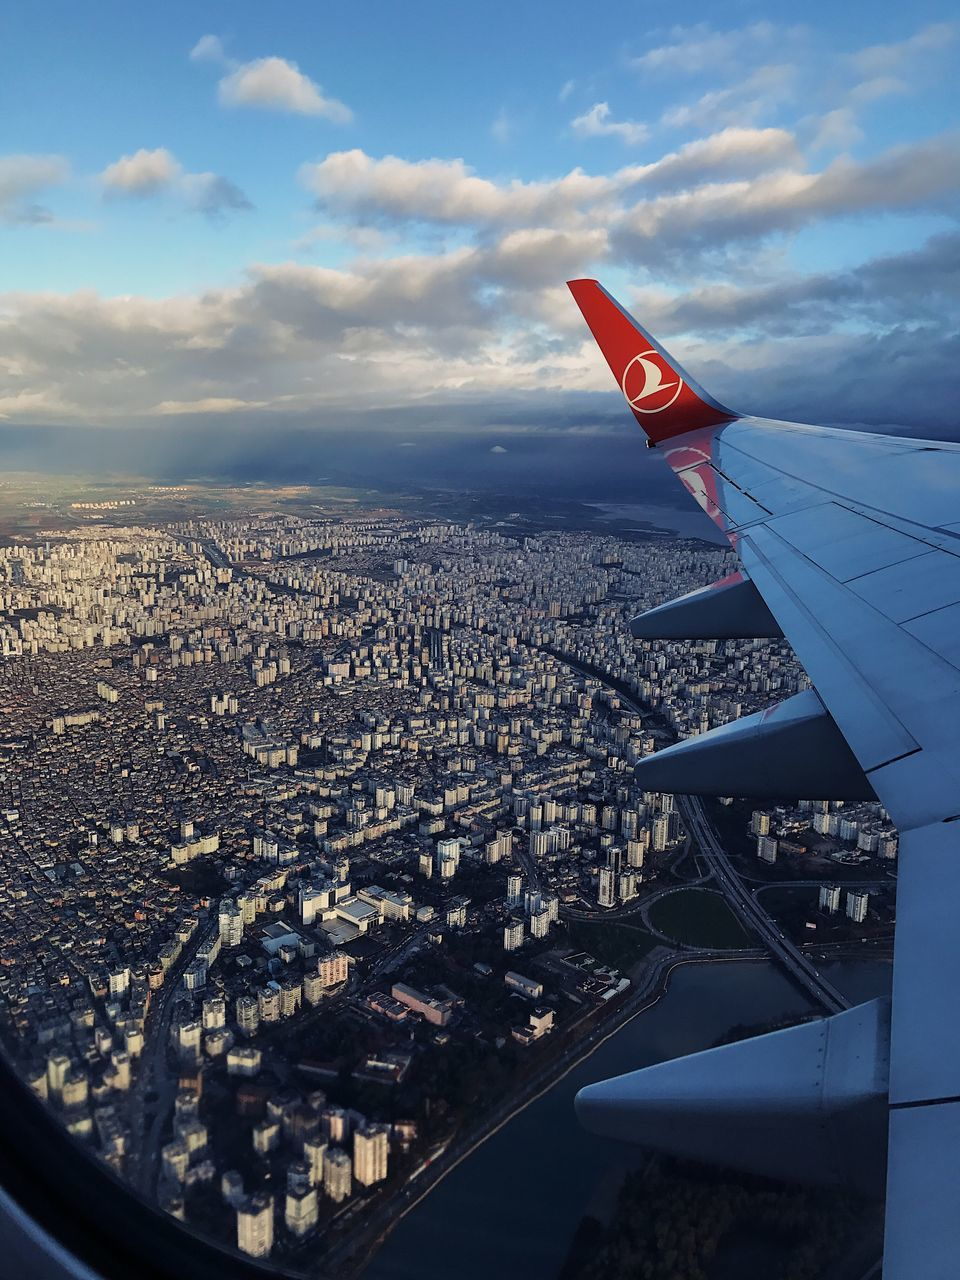 city, cityscape, airplane, architecture, built structure, cloud - sky, aerial view, travel, sky, no people, building exterior, transportation, journey, air vehicle, airplane wing, travel destinations, aircraft wing, outdoors, flying, day